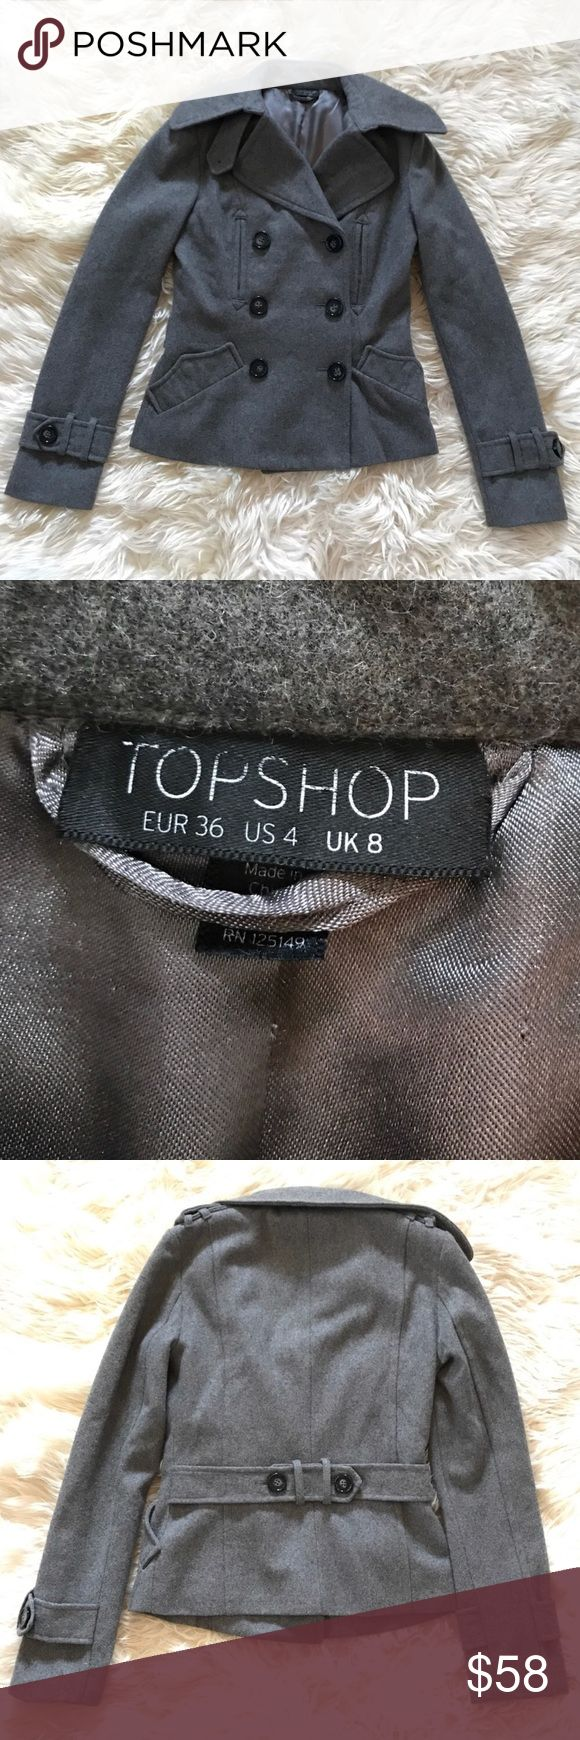 Topshop Grey Pea Coat Size 4 Topshop grey wool pea coat in like great condition. This jacket has Button details on the sleeve cuffs, back and shoulders. Super warm, size 4. Topshop Jackets & Coats